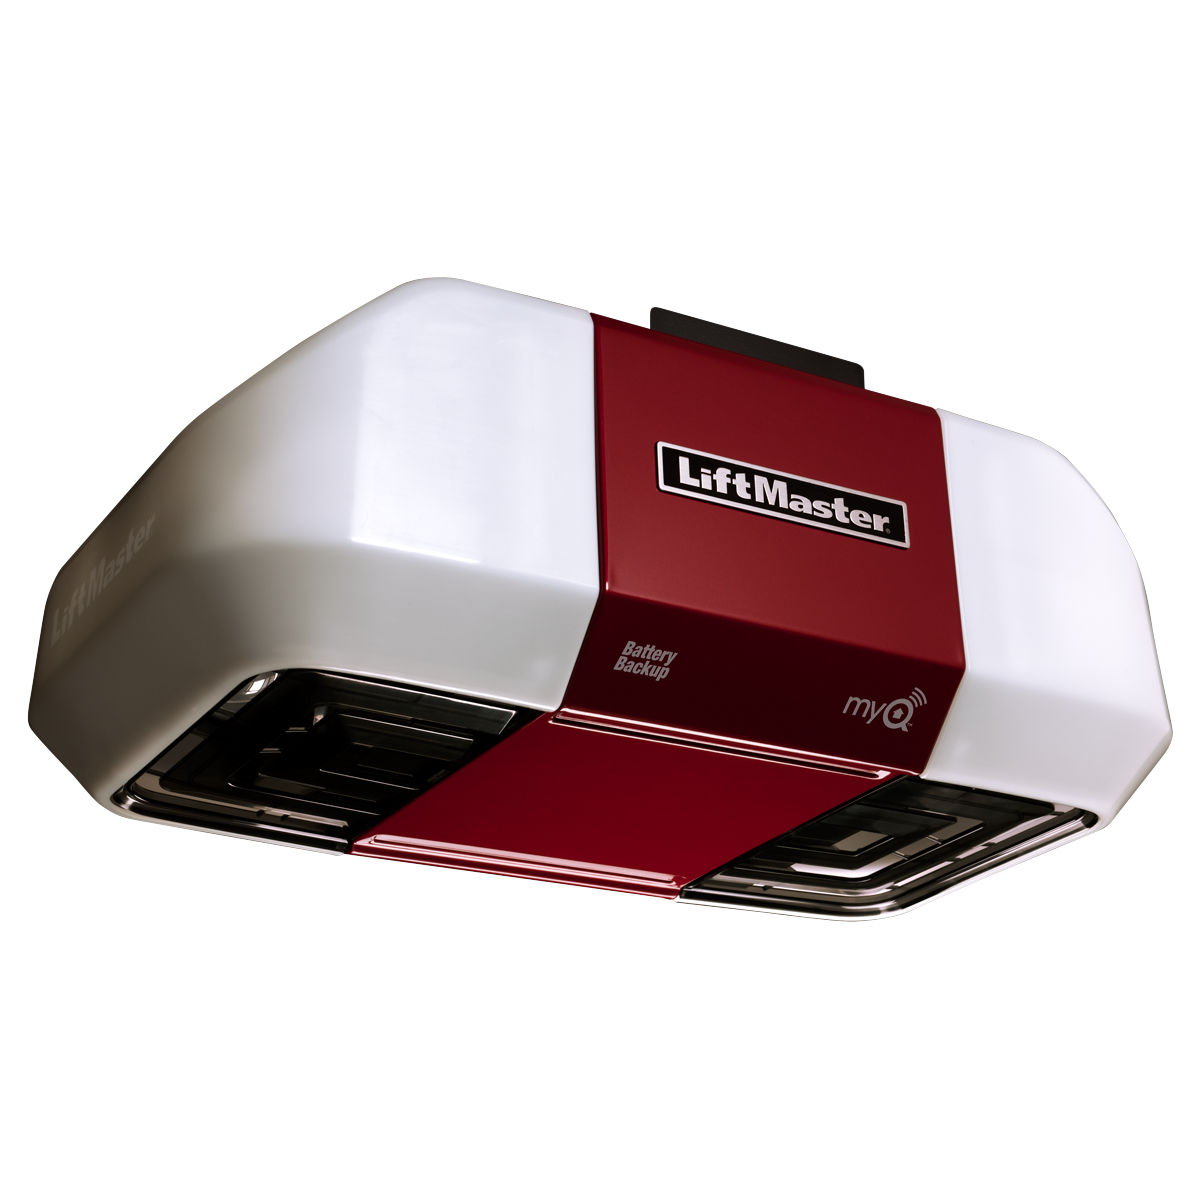 Liftmaster 8550w Barton Overhead Door Inc